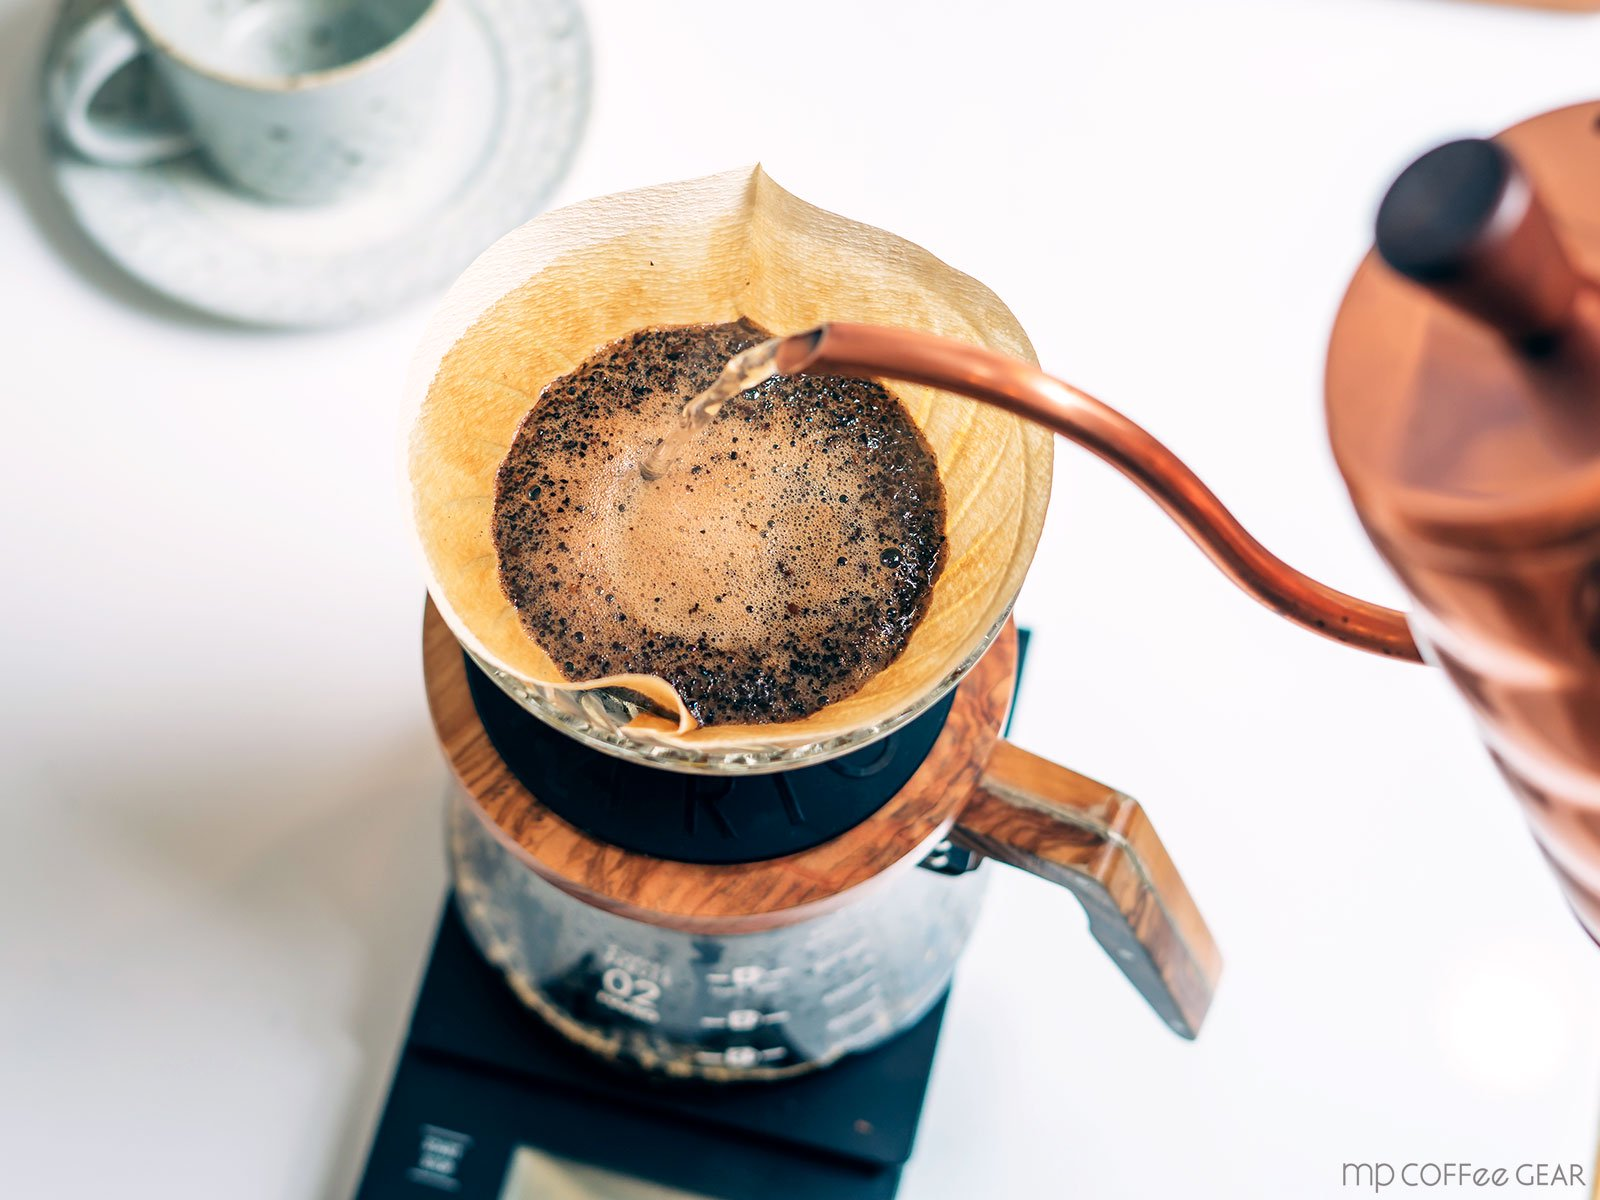 HARIO V60透過ドリッパー オリーブウッド02(1〜4杯用)【+ペーパーフィルター40枚プレゼント!】<img class='new_mark_img2' src='https://img.shop-pro.jp/img/new/icons1.gif' style='border:none;display:inline;margin:0px;padding:0px;width:auto;' />